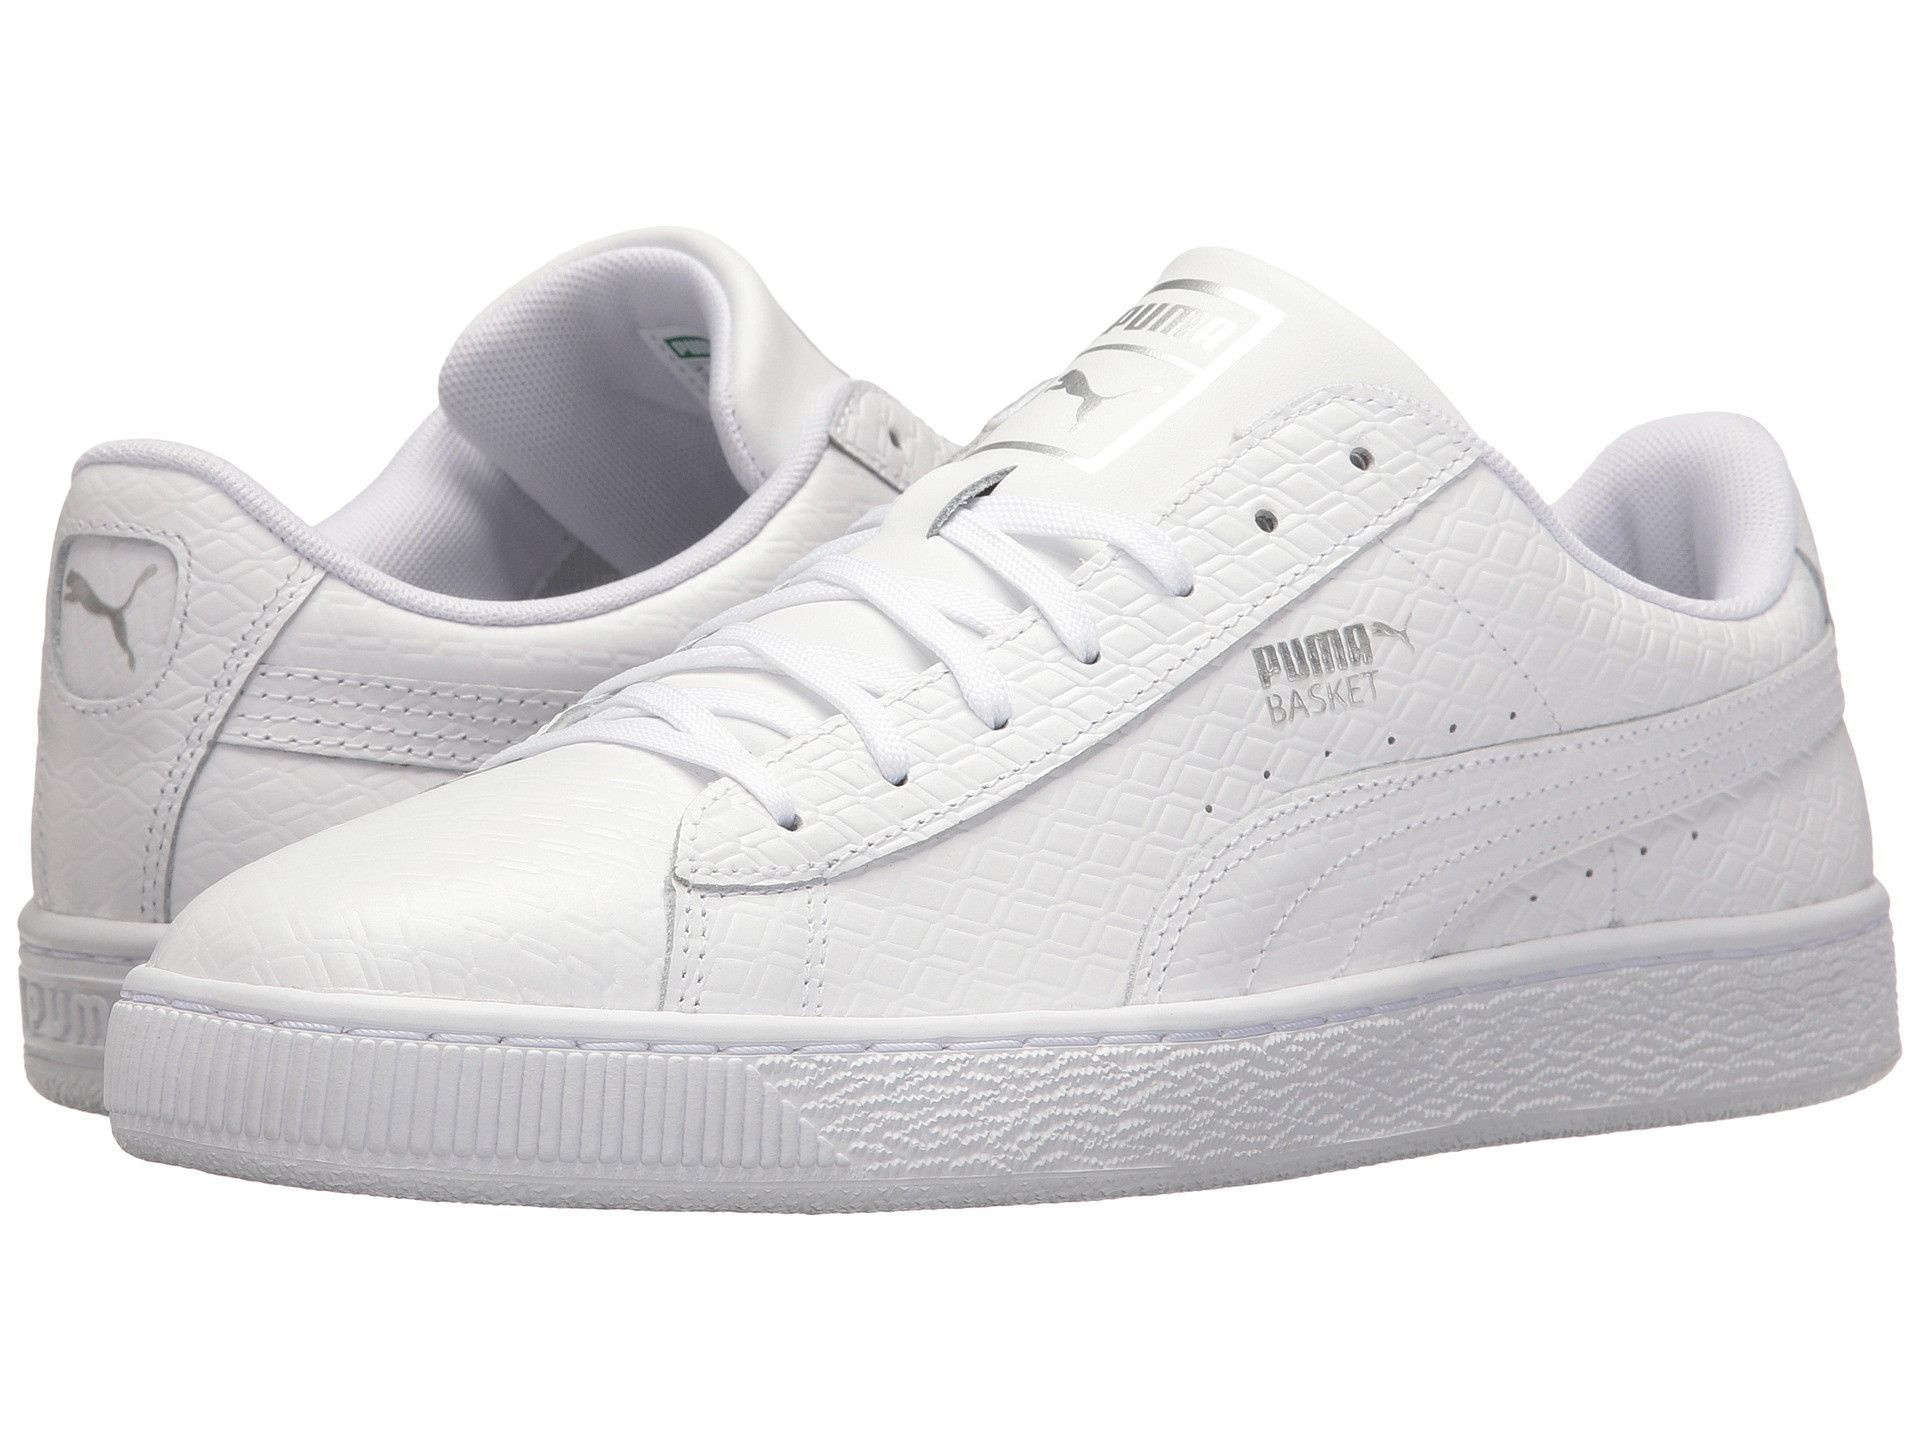 M Spartoo White Free Delivery Basket Puma Classic Lfs With